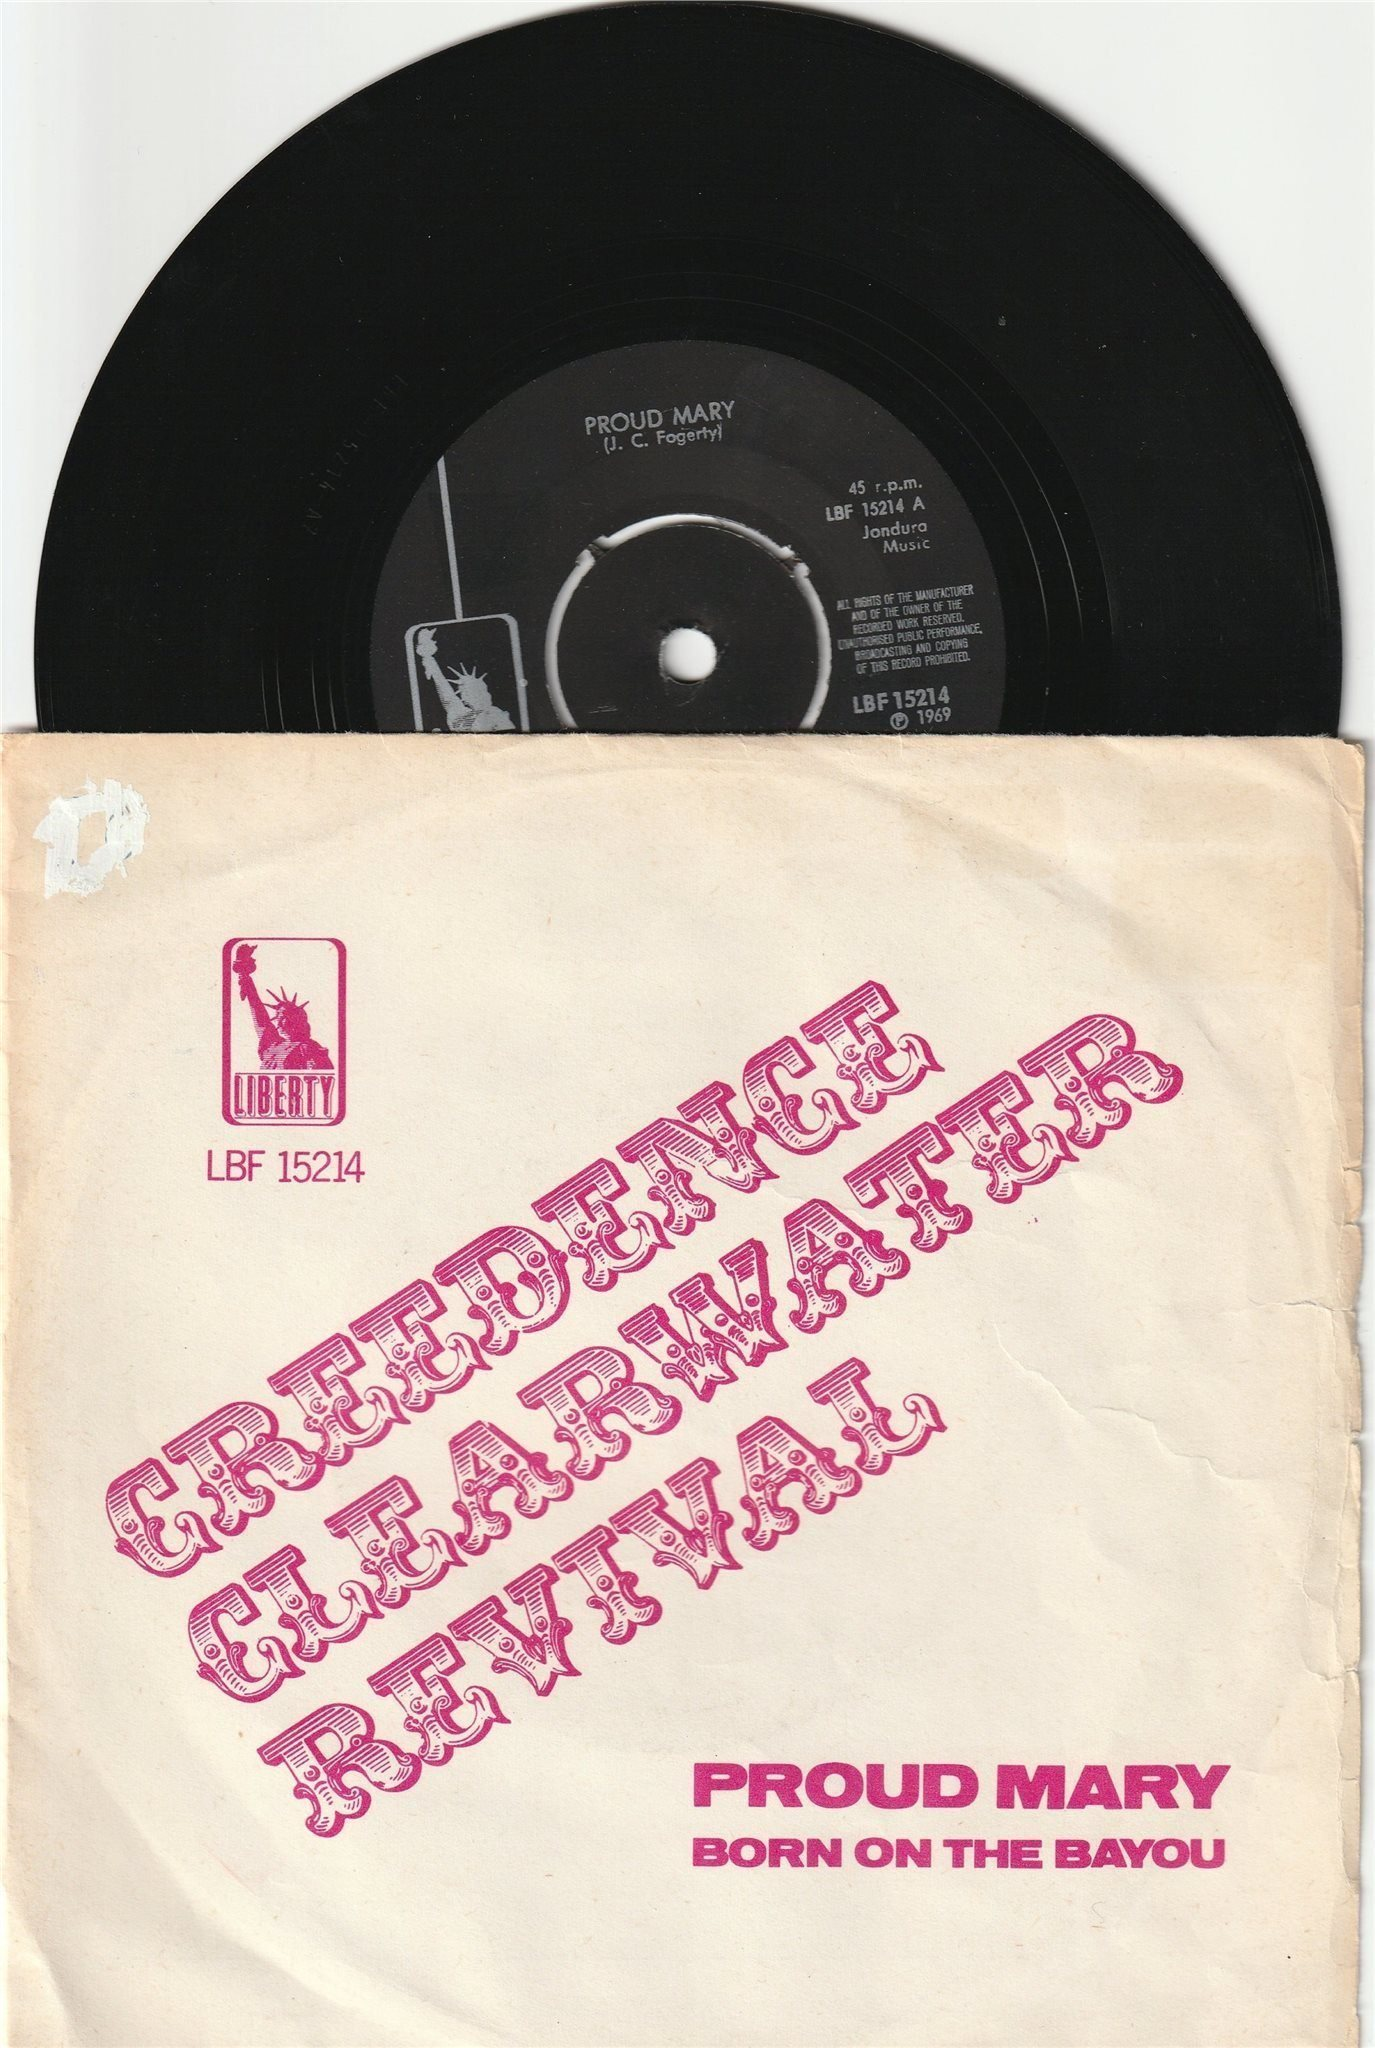 CREEDENCE CLEARWATER REVIVAL 7'' - Proud Mary SWE -69, PS